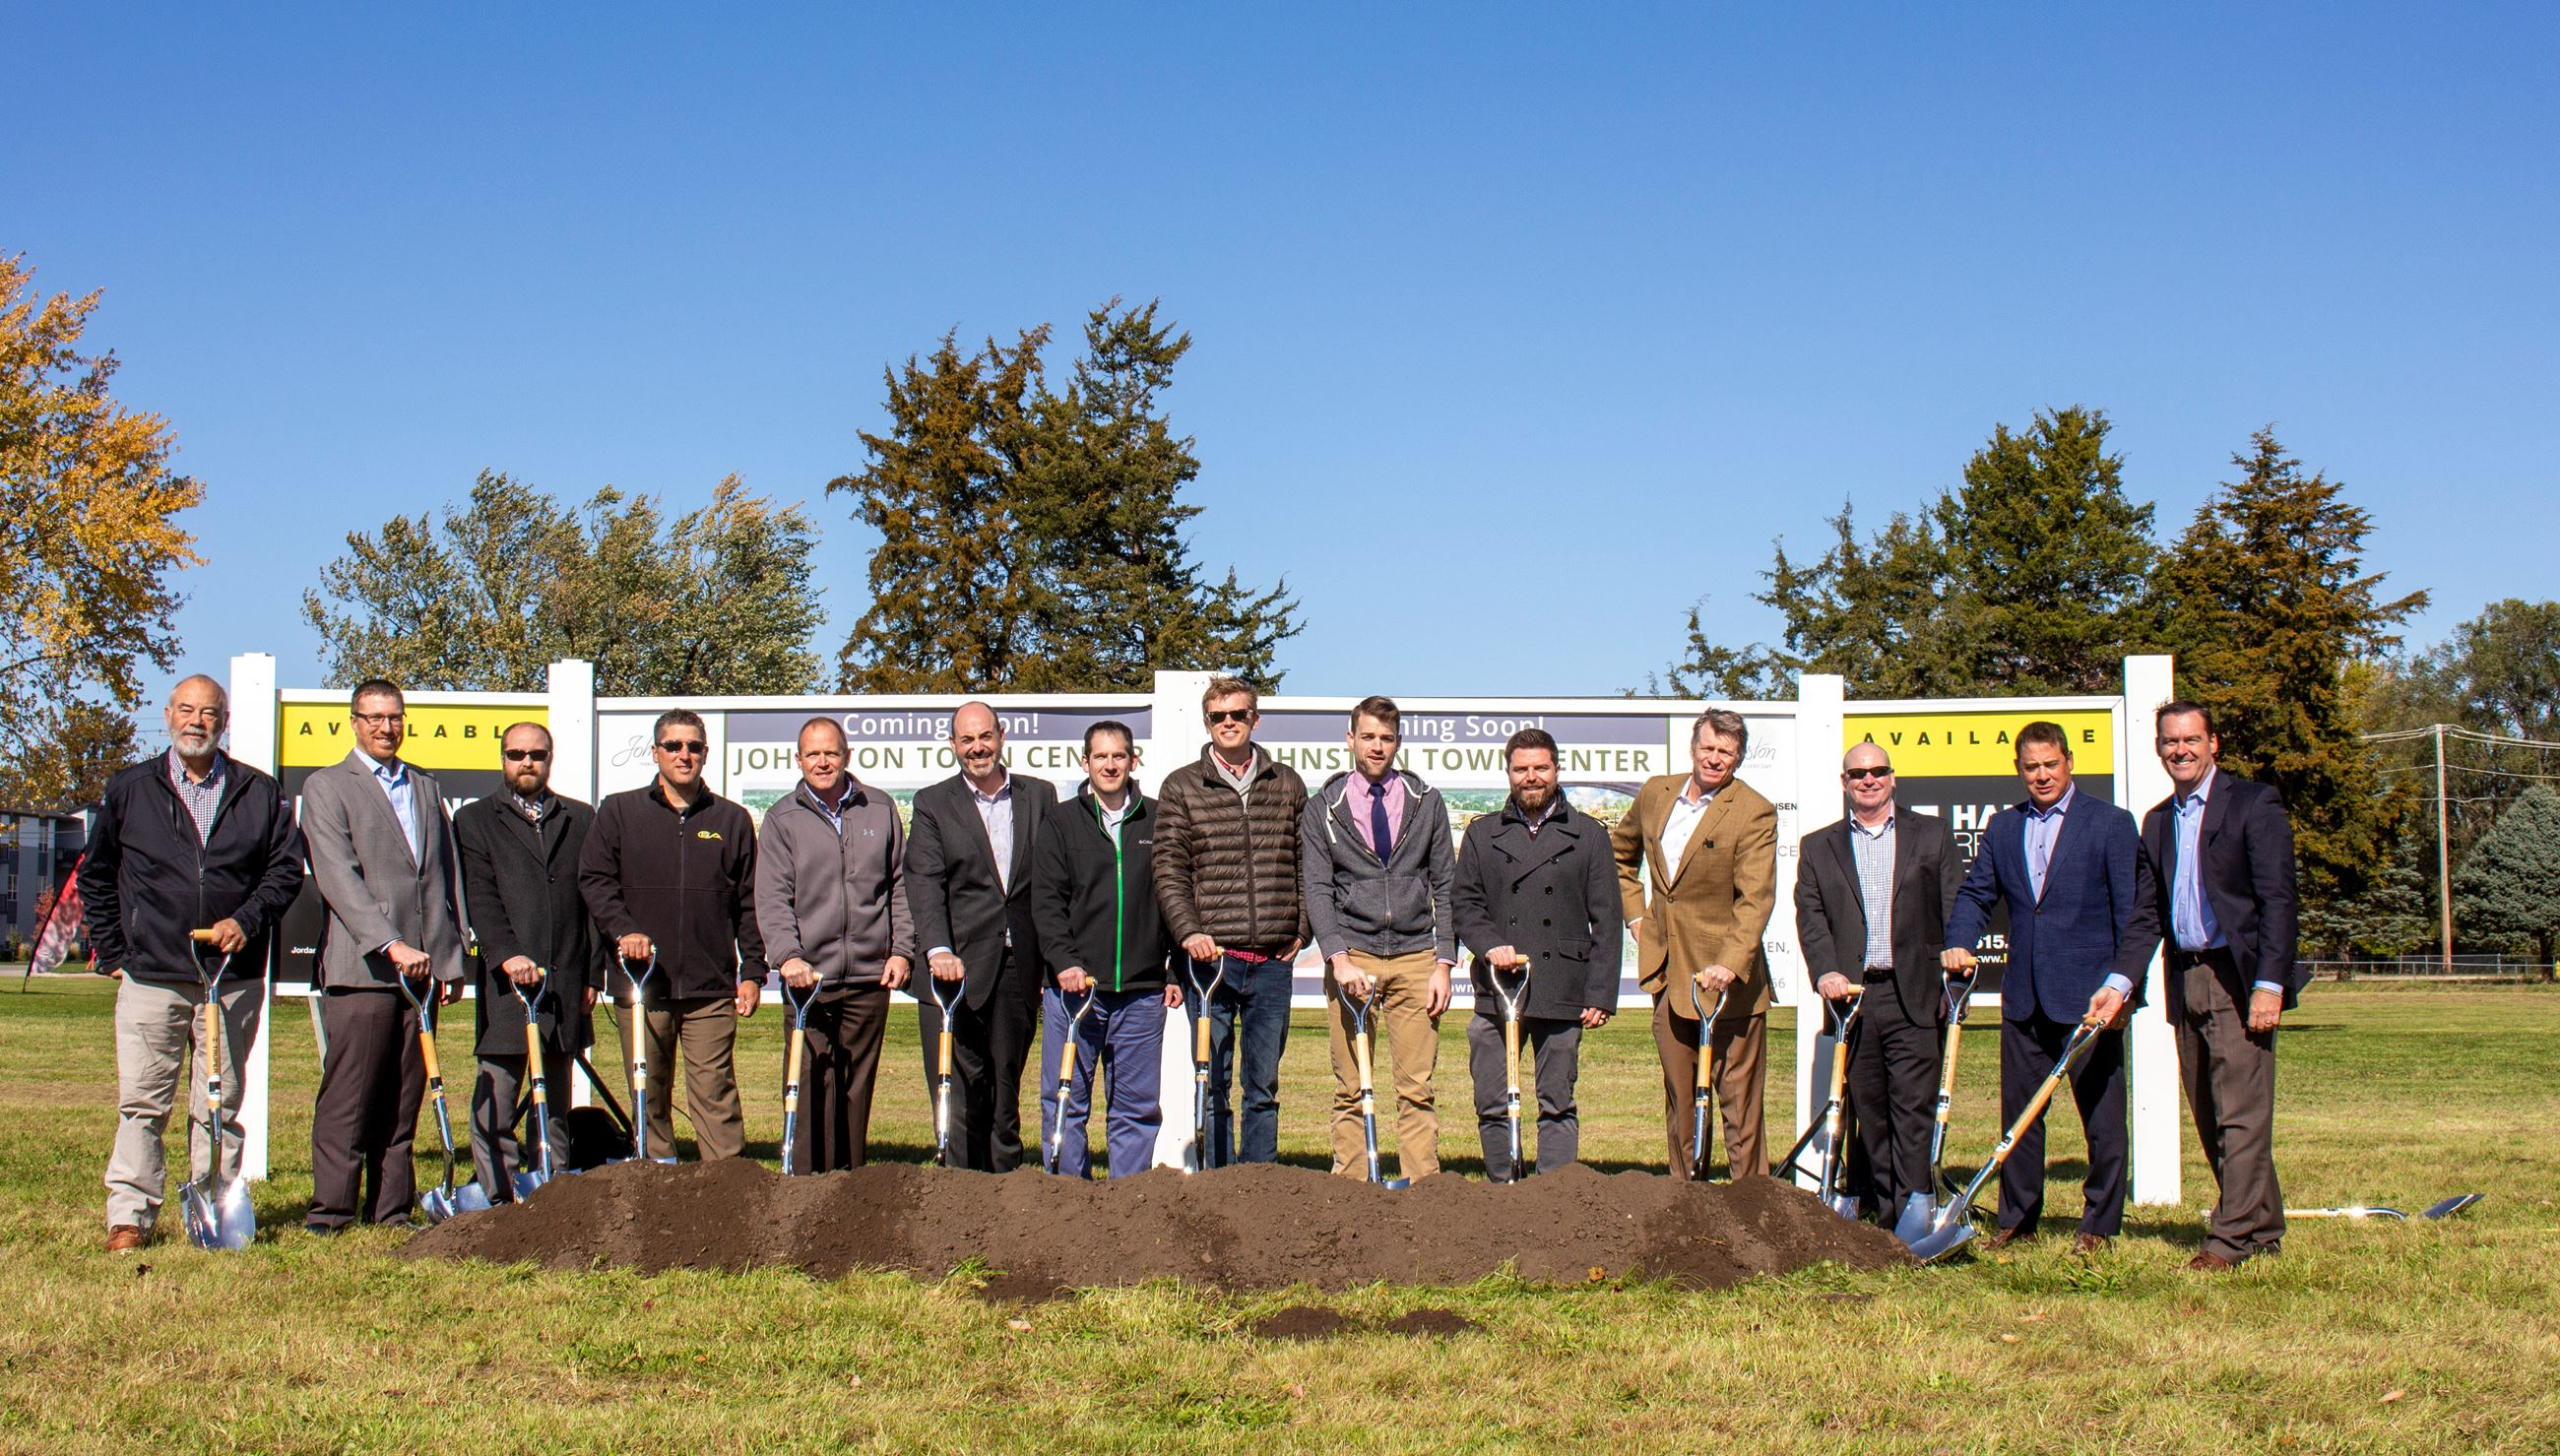 3. Johnston Town Center Groundbreaking_Oct. 2019